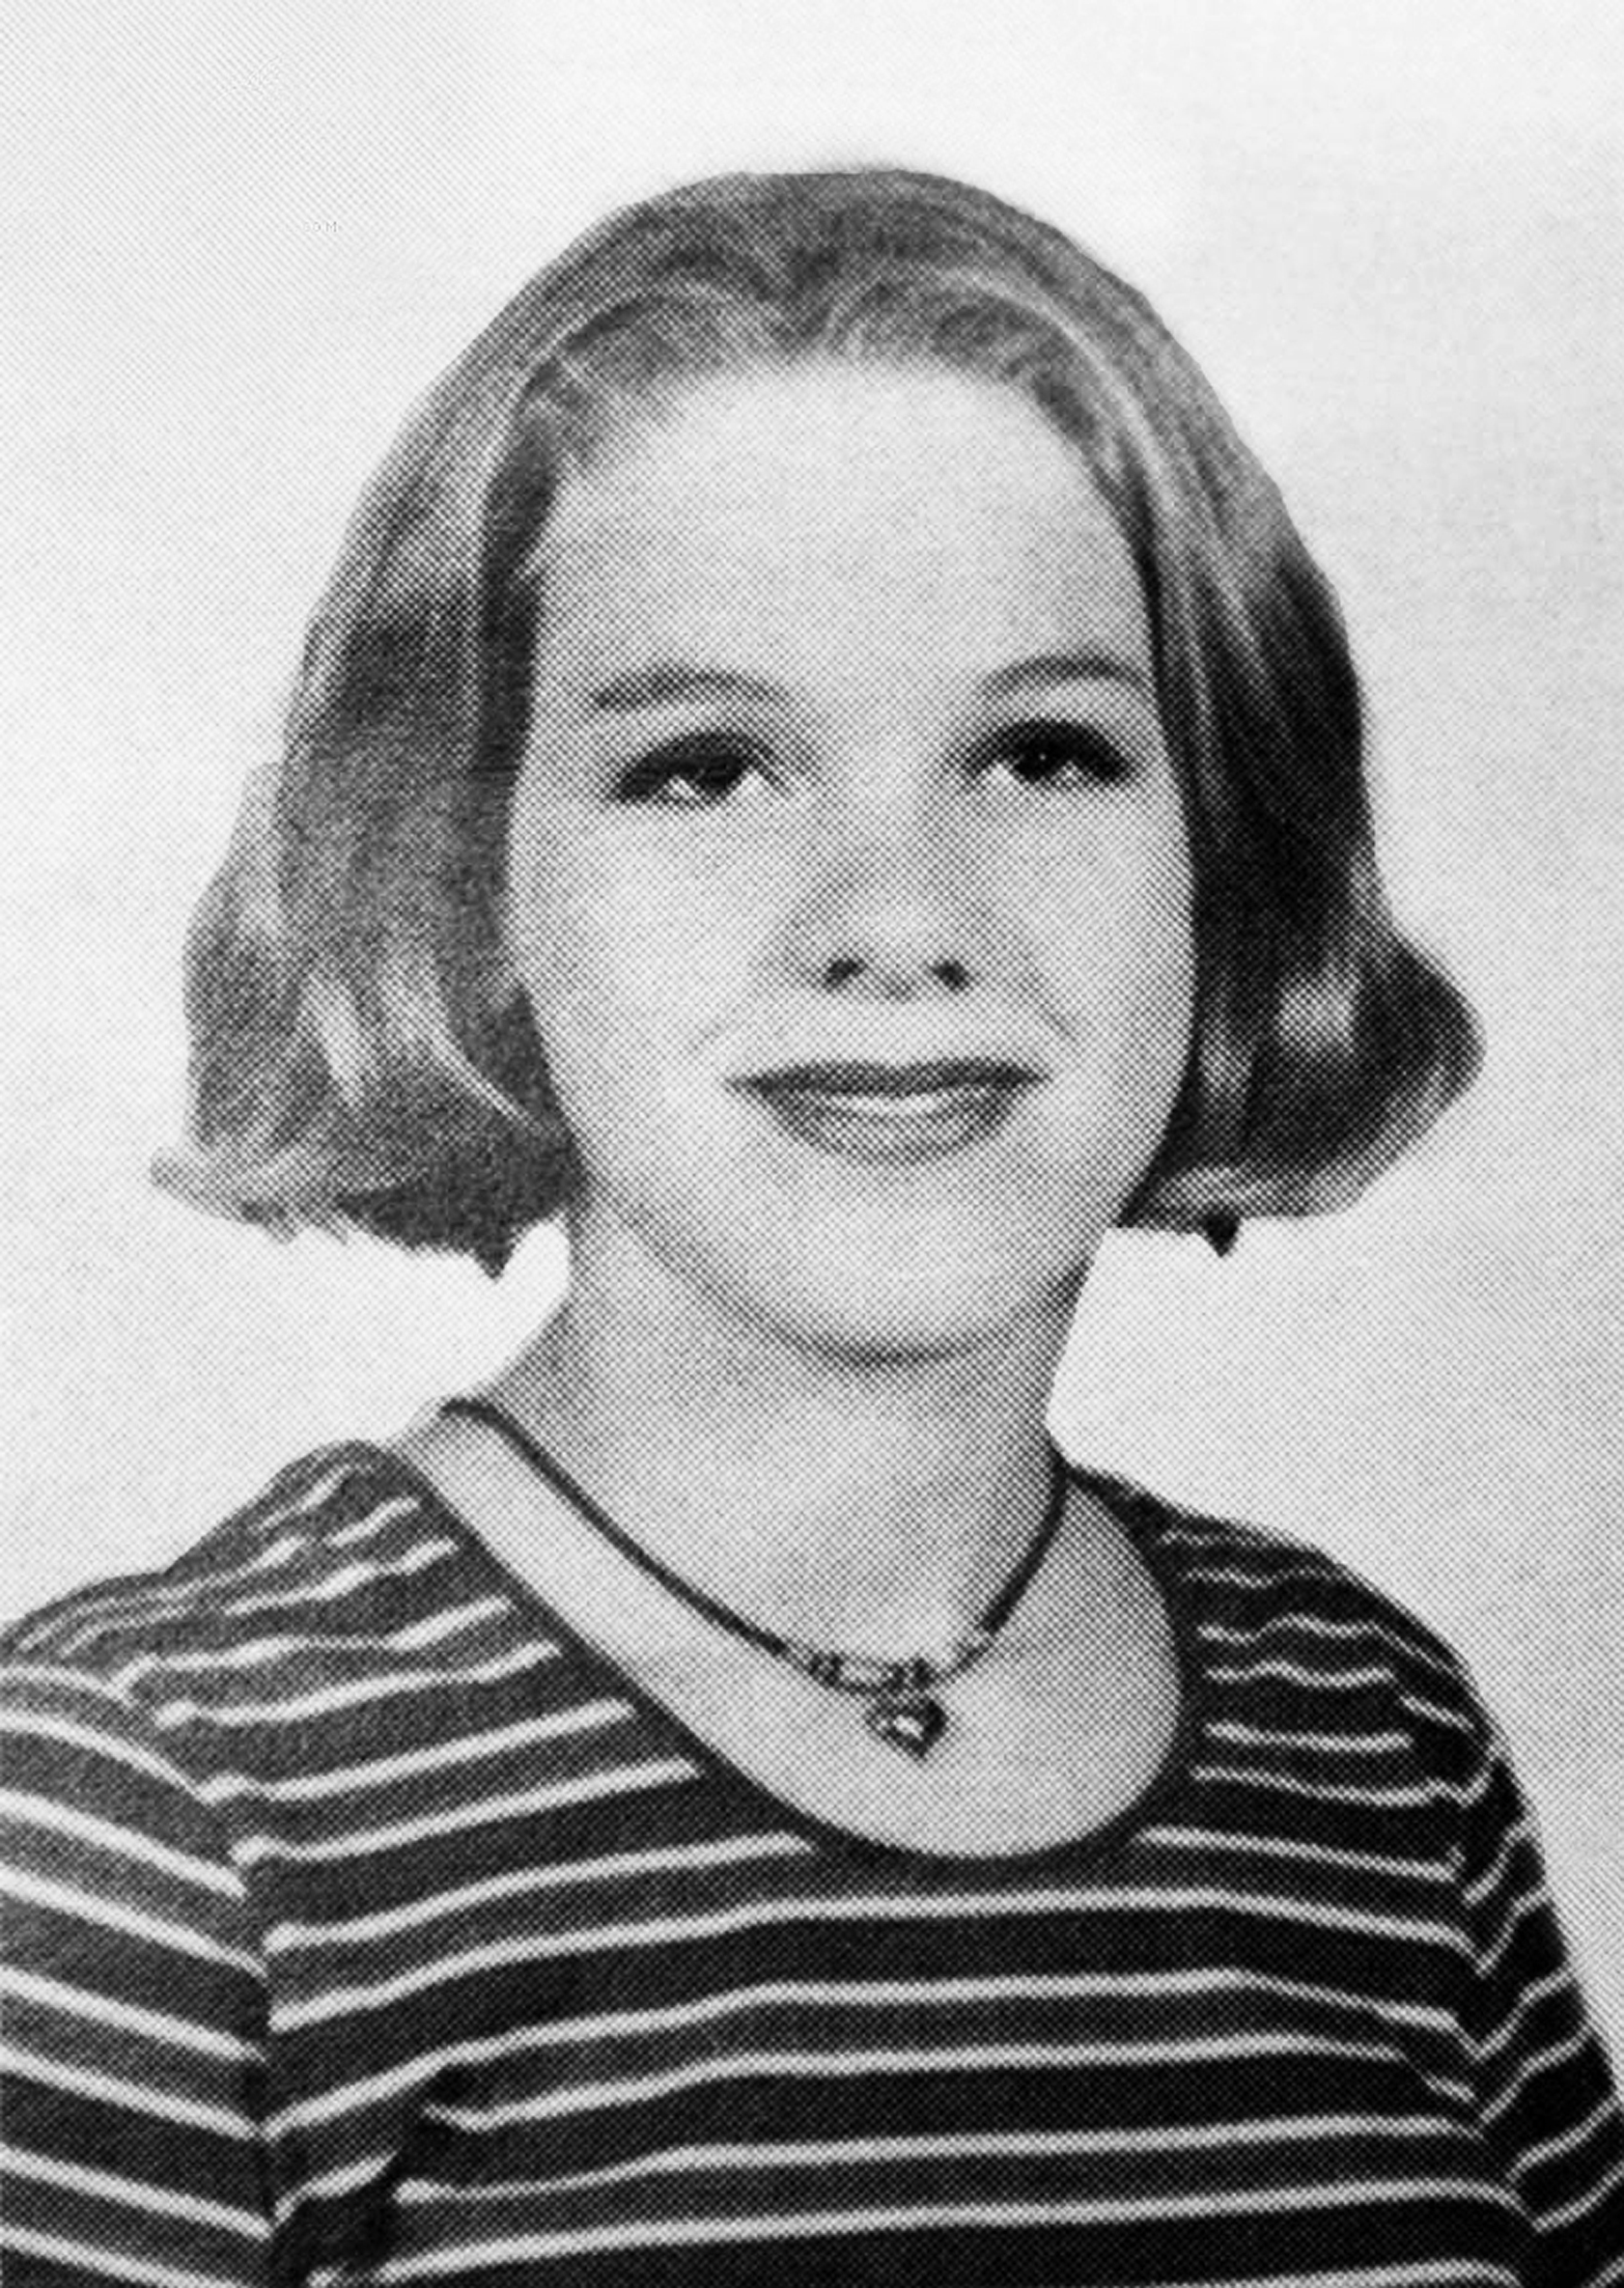 Pink poses for a yearbook photo during eighth grade at Lenape Middle School in Doylestown, Pennsylvania, in 1993.